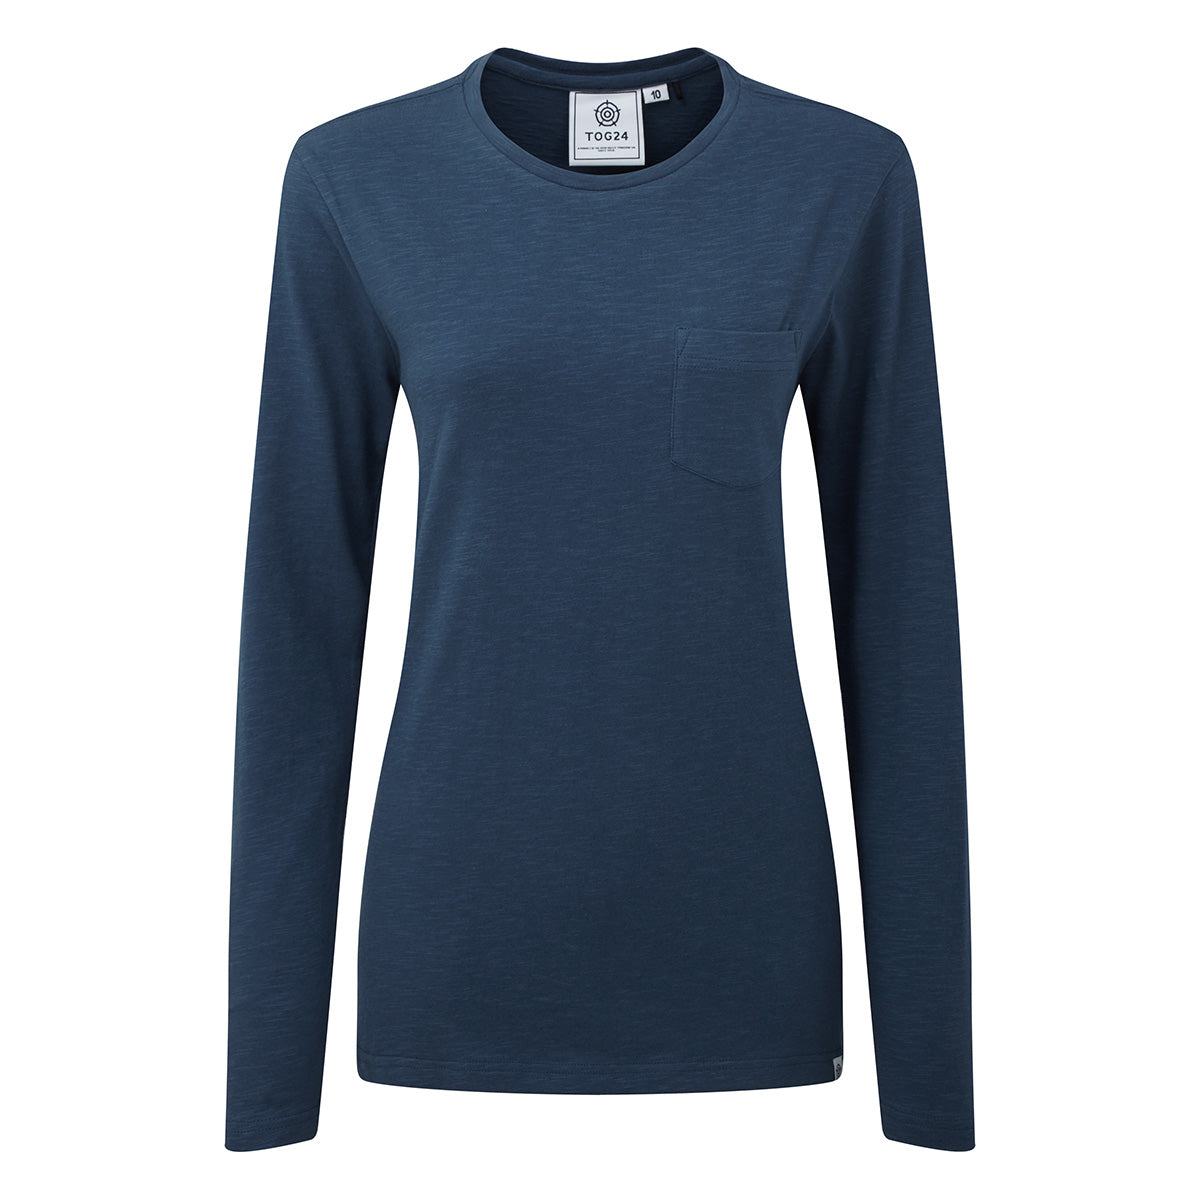 Askwith Womens Long Sleeve Pocket T-Shirt - Blue image 4